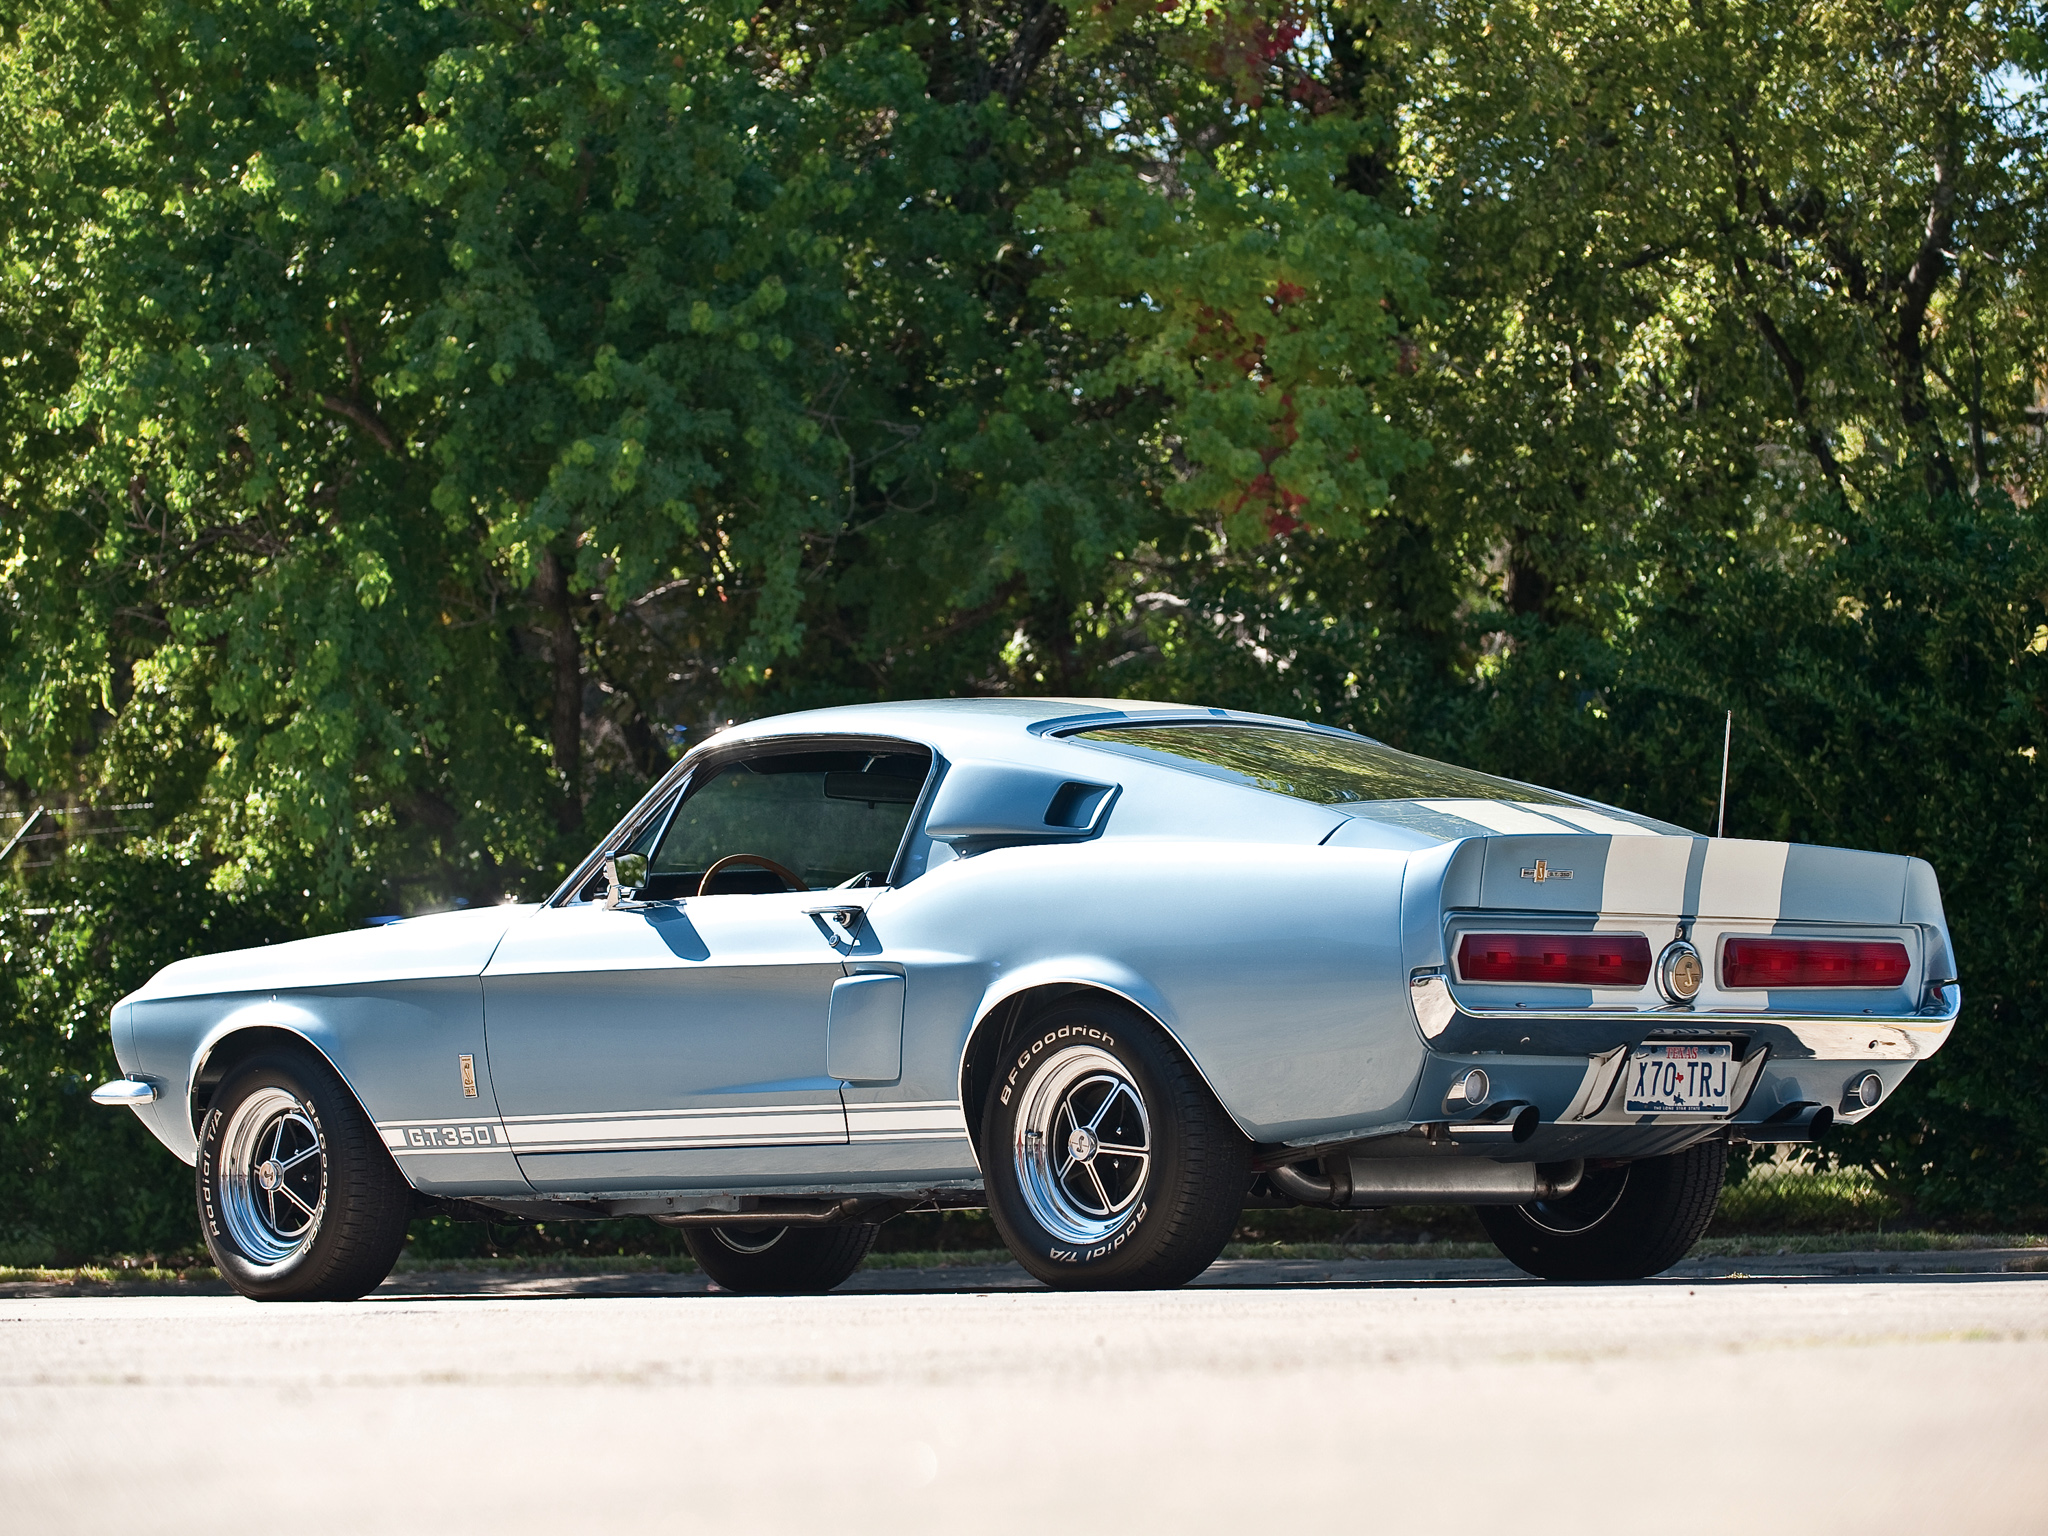 1967 shelby gt350 ford mustang classic muscle wallpaper 2048x1536 94483 wallpaperup